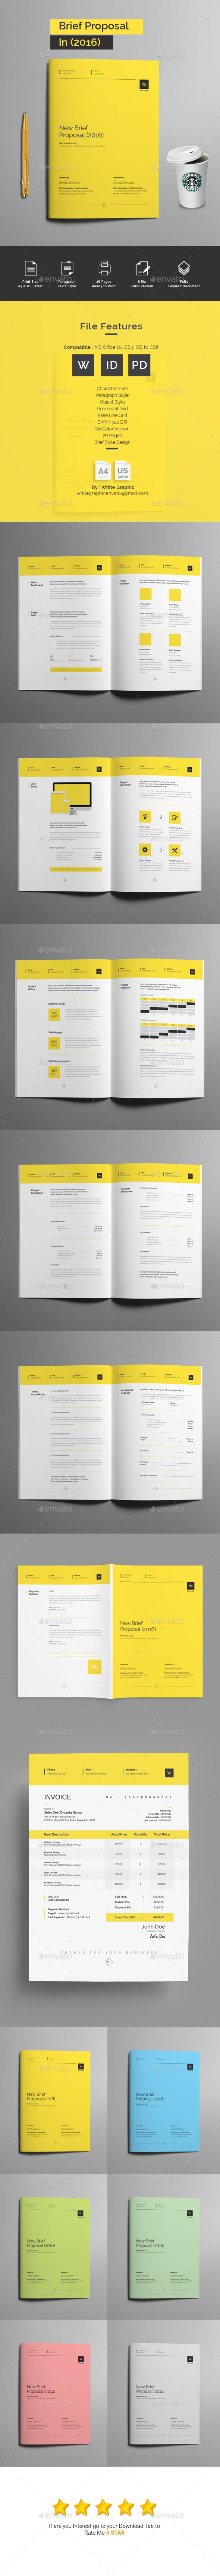 New Brief Proposal  #swiss #estimate #us letter • Click here to download ! http://graphicriver.net/item/new-brief-proposal/16025332?ref=pxcr